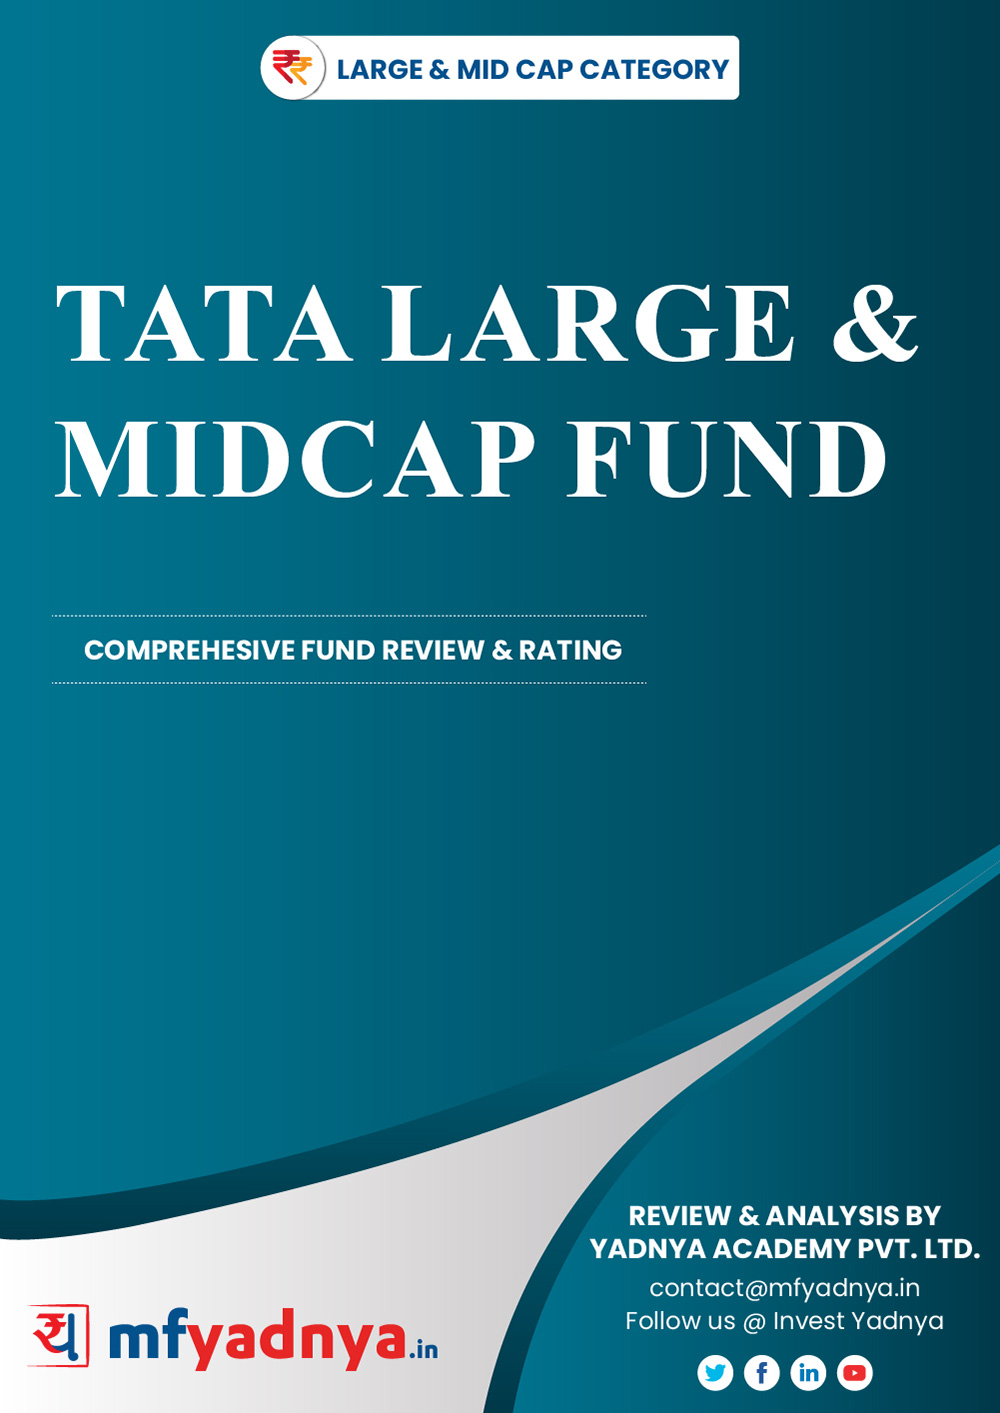 Large & Midcap Category Review - 'TATA Large & Midcap Fund'. Most Comprehensive and detailed MF review based on Yadnya's proprietary methodology of Green, Yellow & Red Star. Detailed Analysis & Review based on Nov 30th, 2019 data.